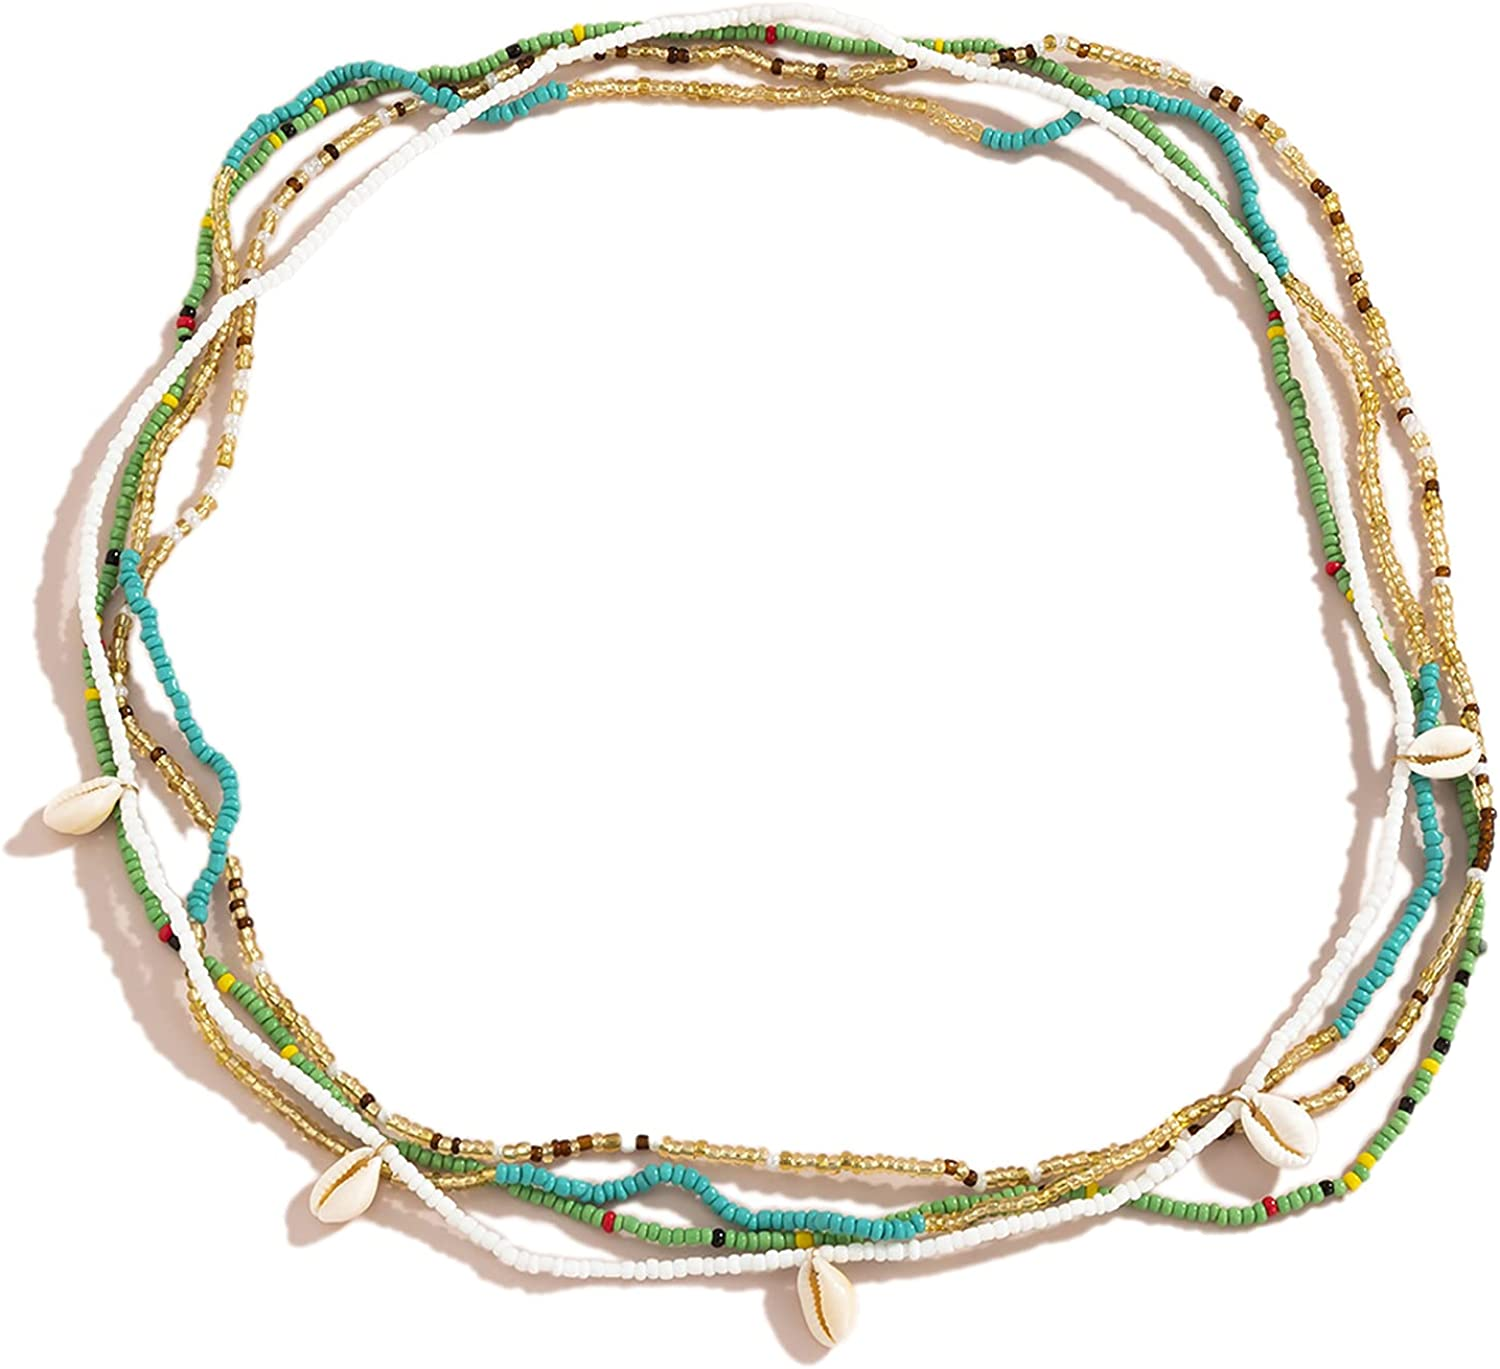 Colorful Free shipping anywhere in the nation African Waist Beaded Belly Elastic OFFicial Body Chain Set